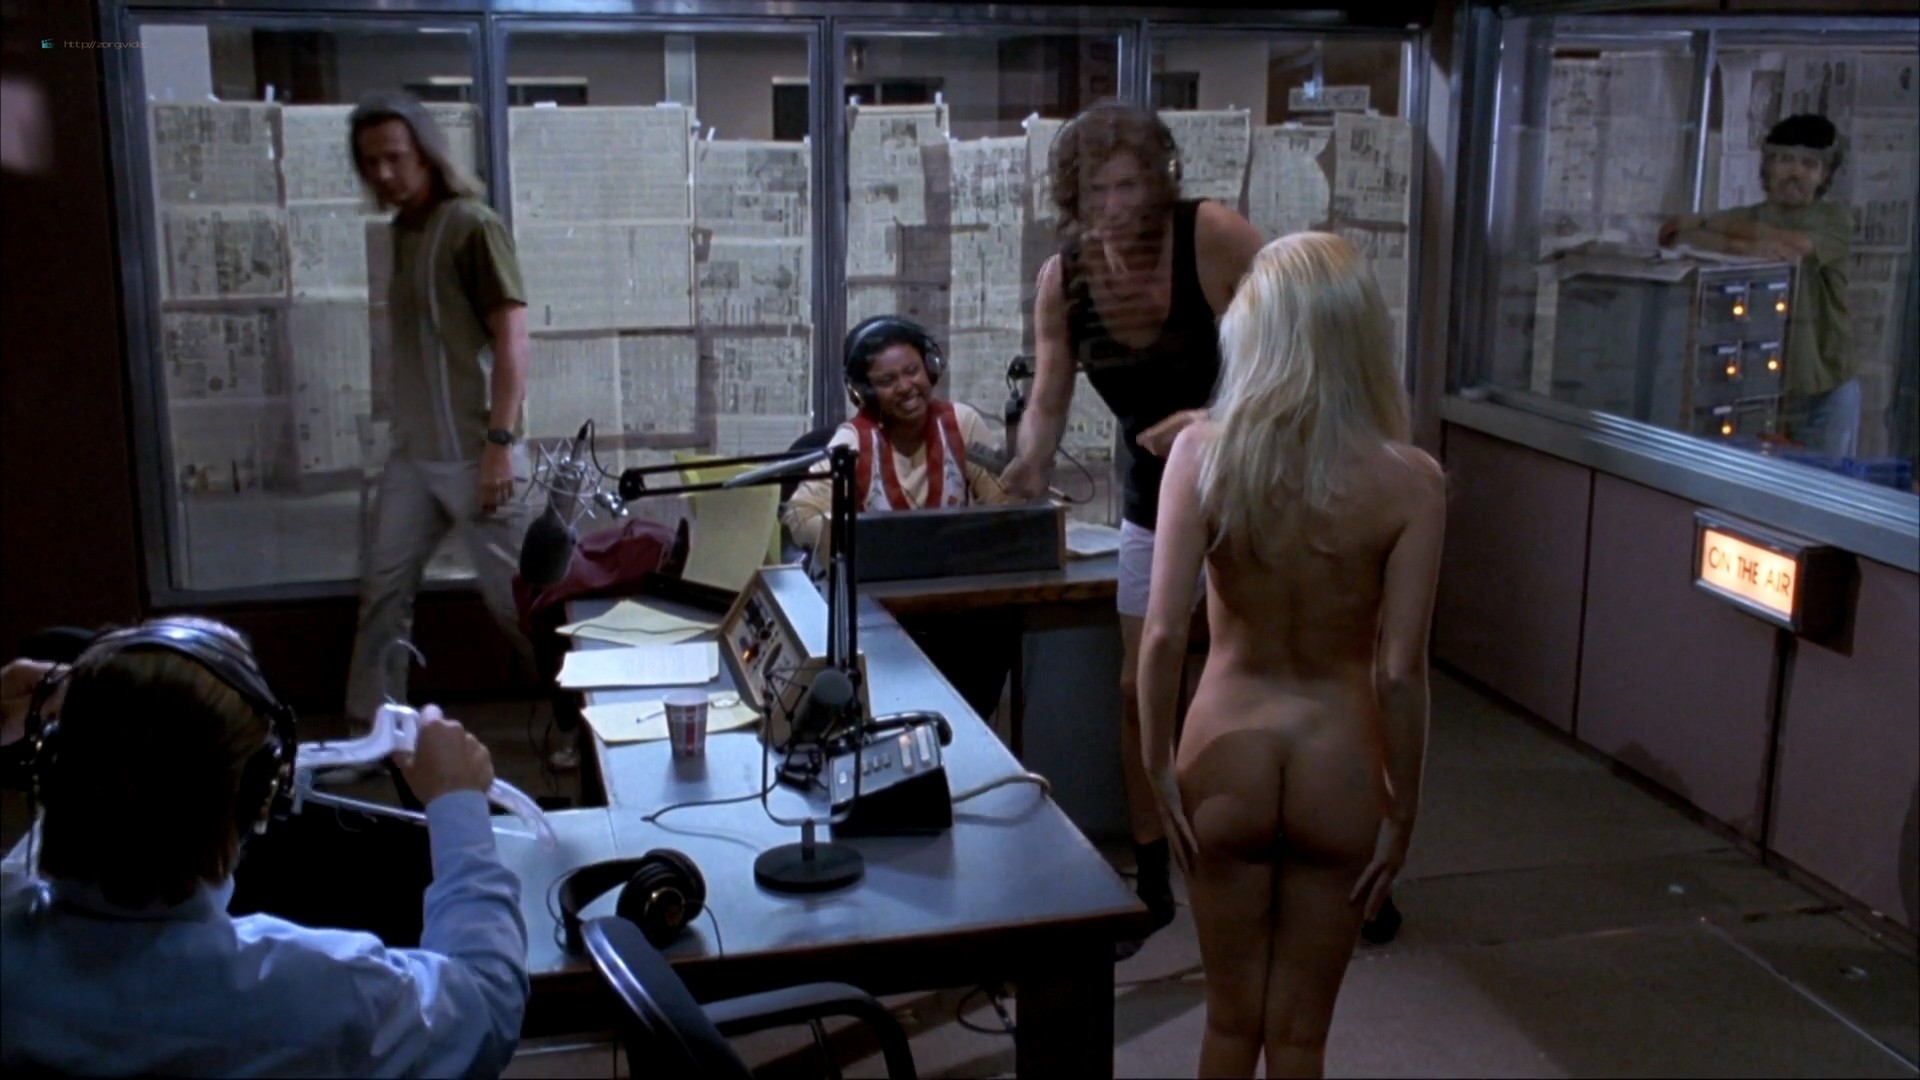 Melanie Good nude Jenna Jameson nude full frontal - Private Parts (1997) 1080p BluRay (17)